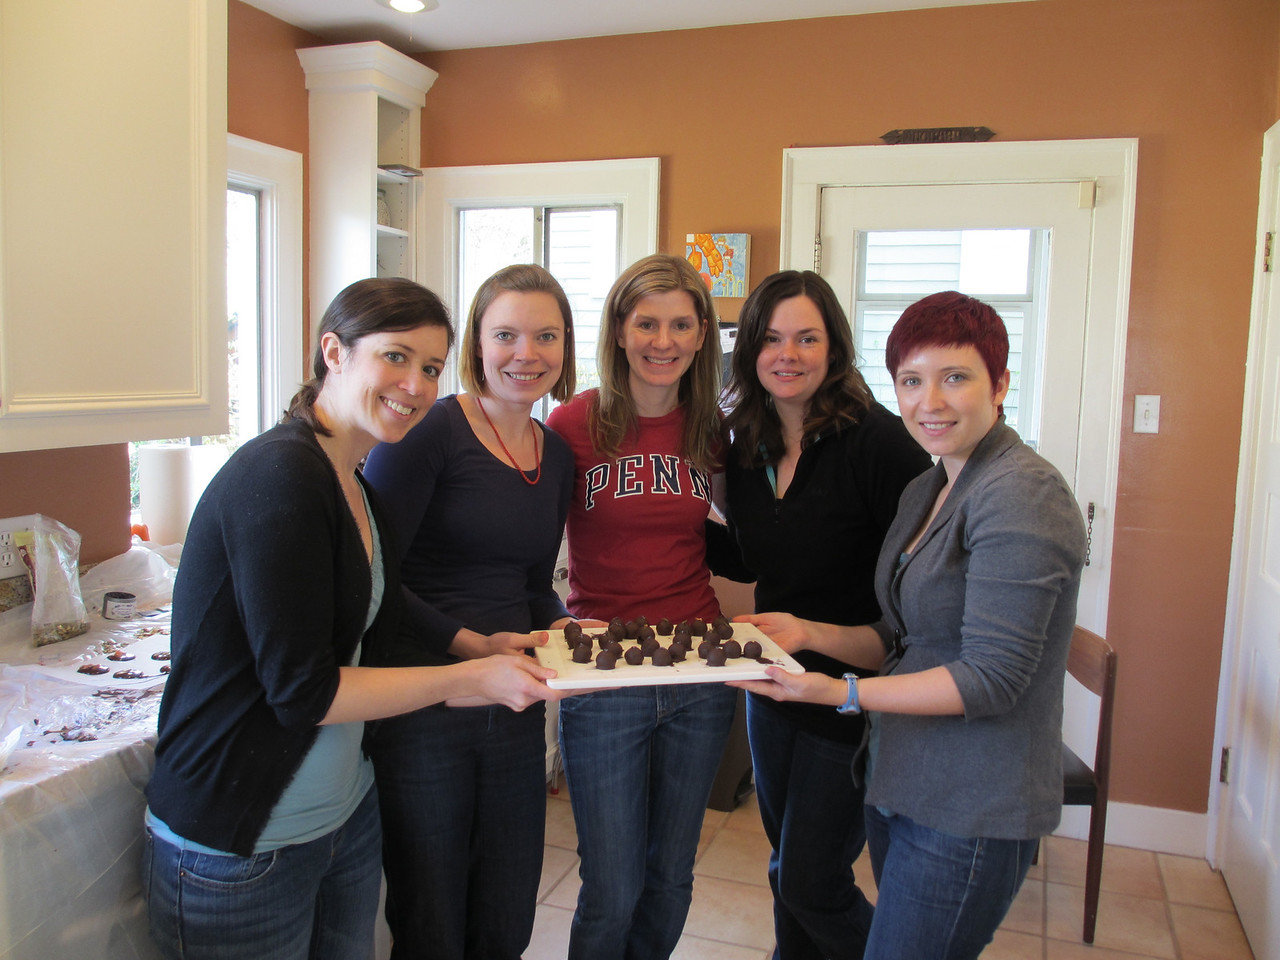 Elizabeth's chocolate making class arranged by Jenny Feinberg (second from left)